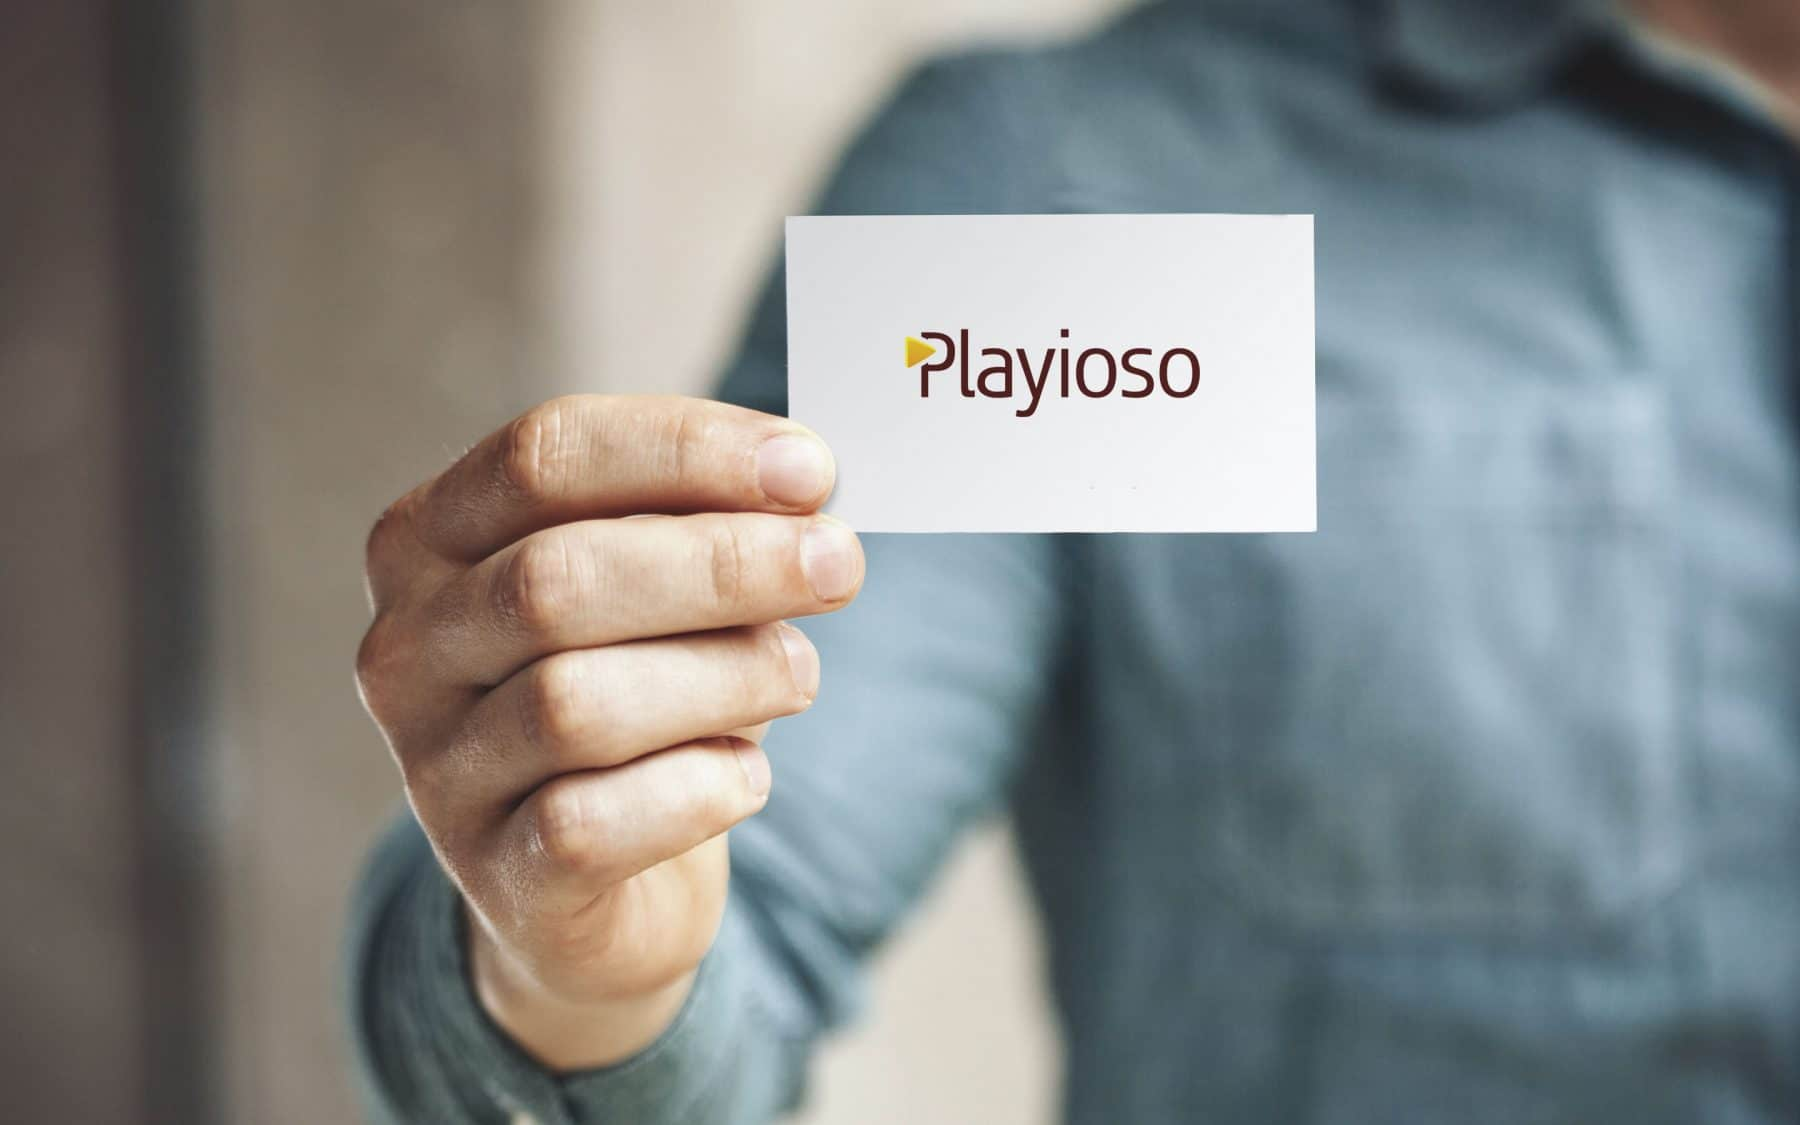 Playioso 1